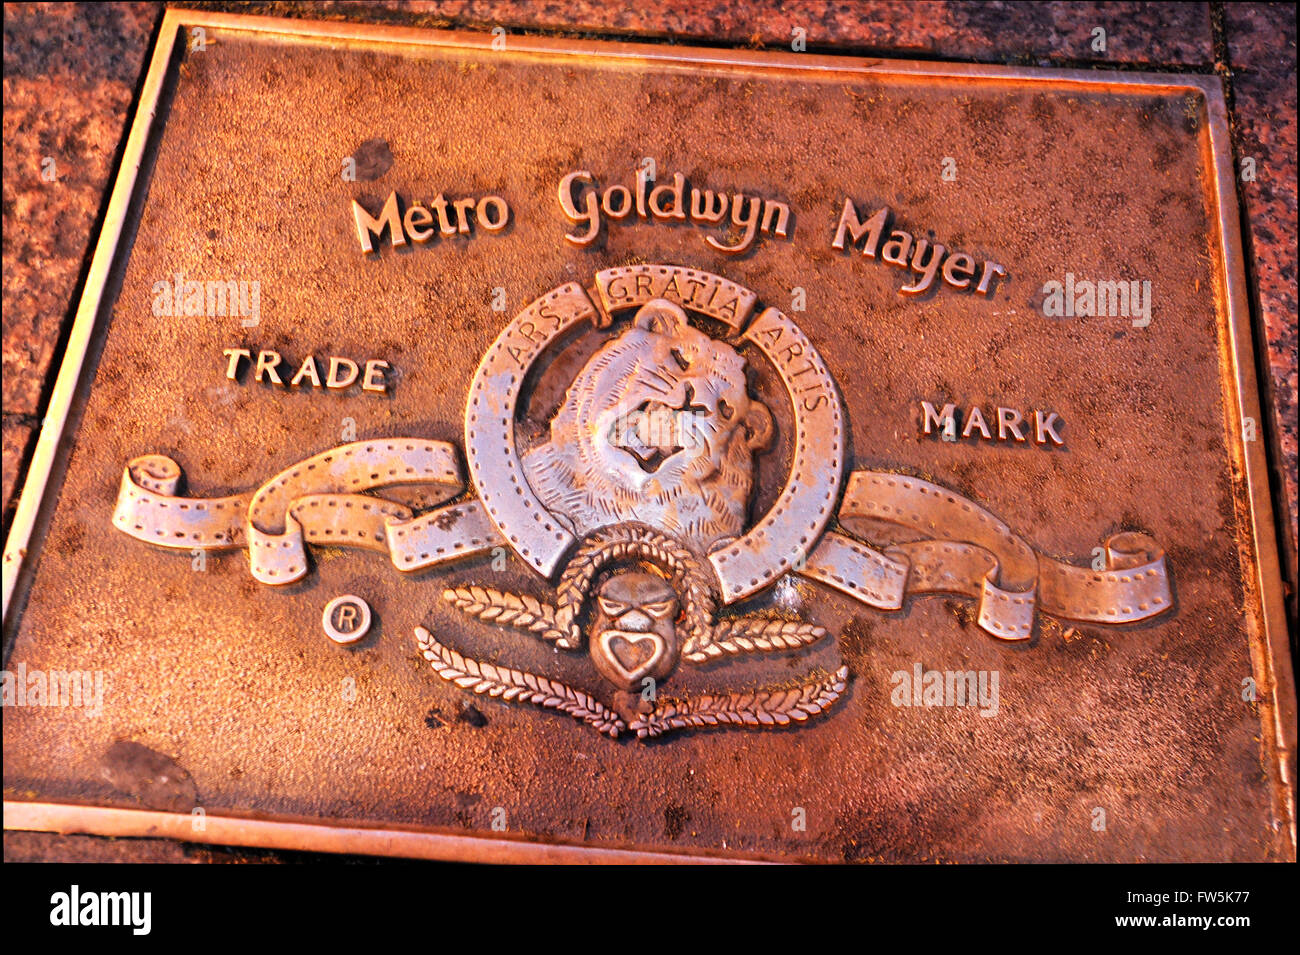 Metro Goldwyn Mayer bronze plaque in the pavement of Leicester Square: of Metro-Goldwyn-Mayer Inc., MGM, American - Stock Image